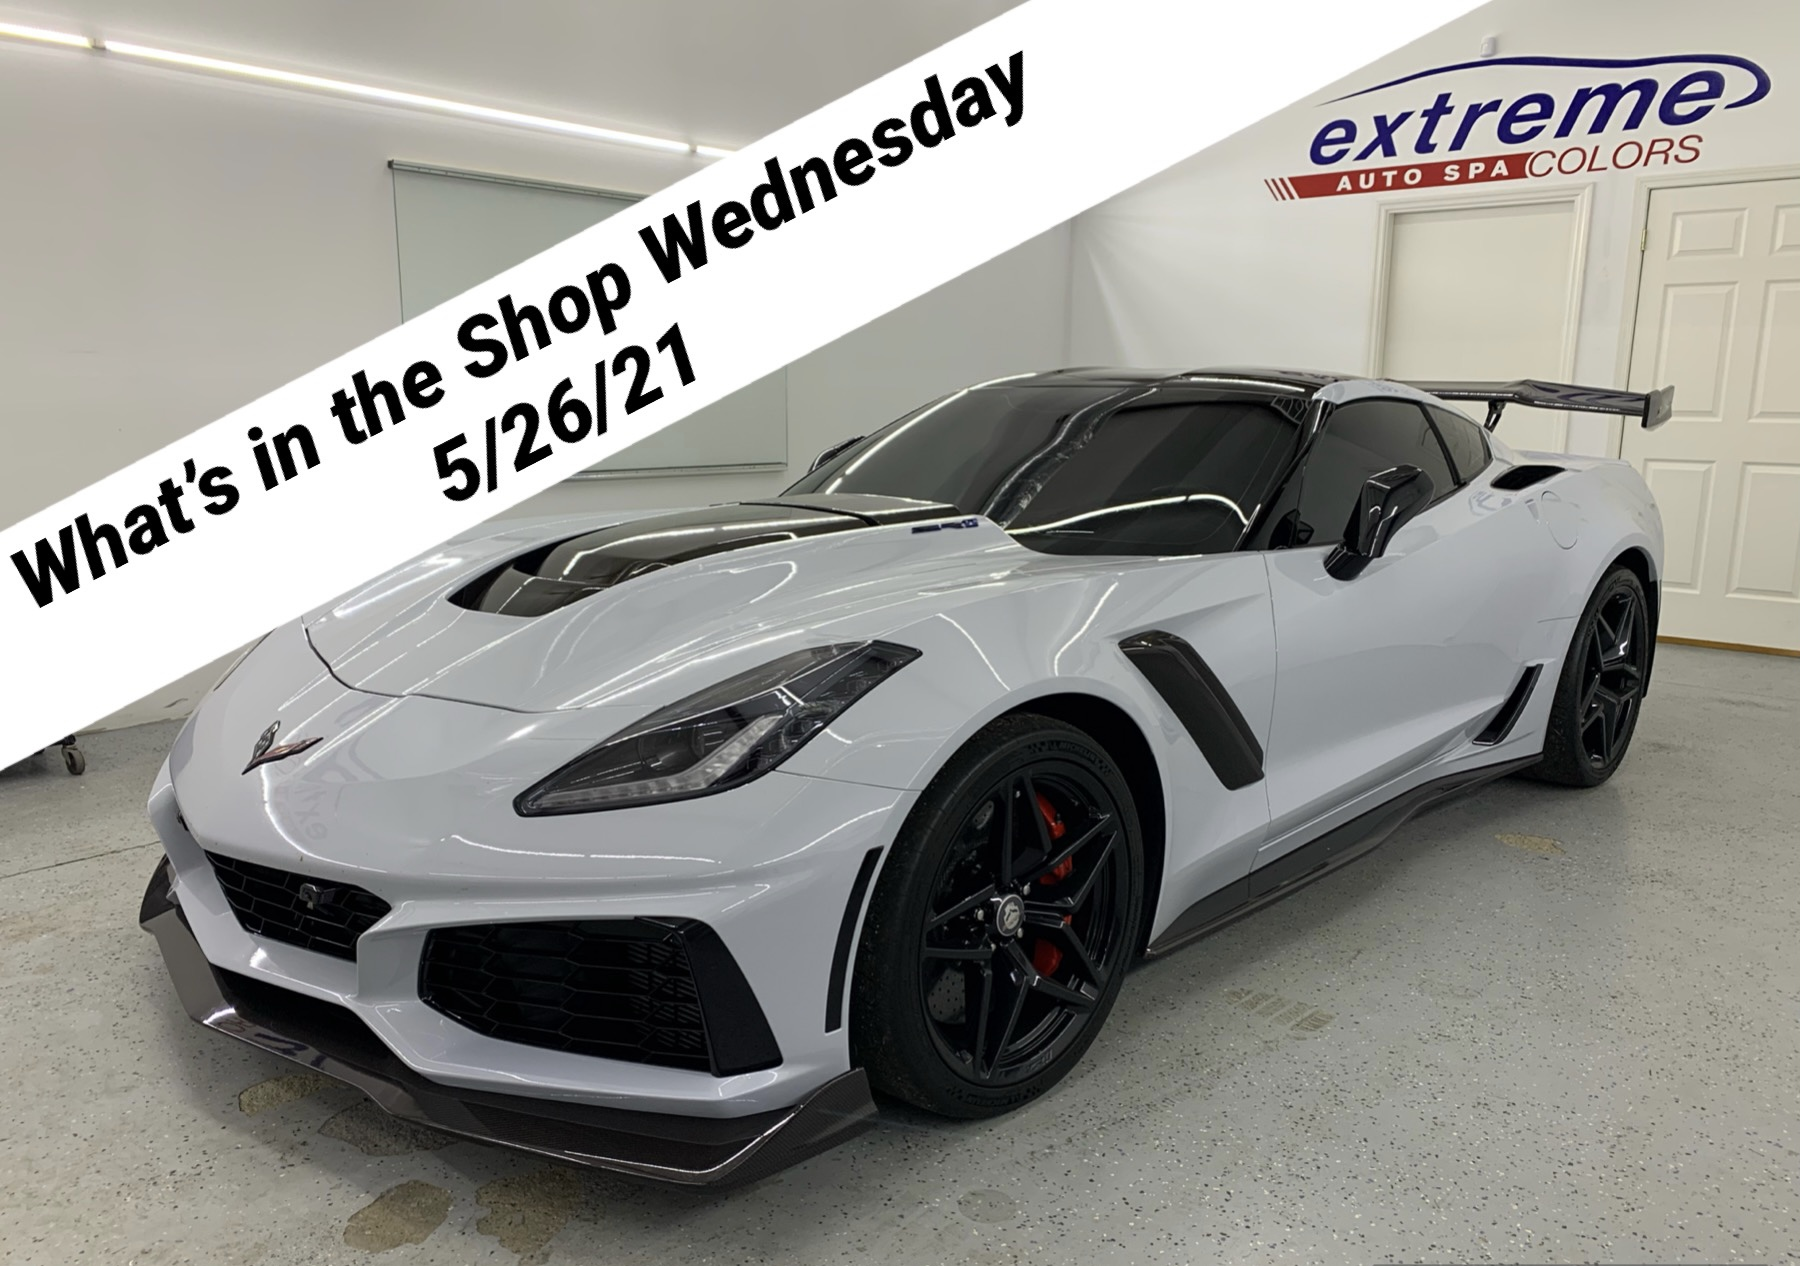 What's in the Shop Wednesday 5/26/21